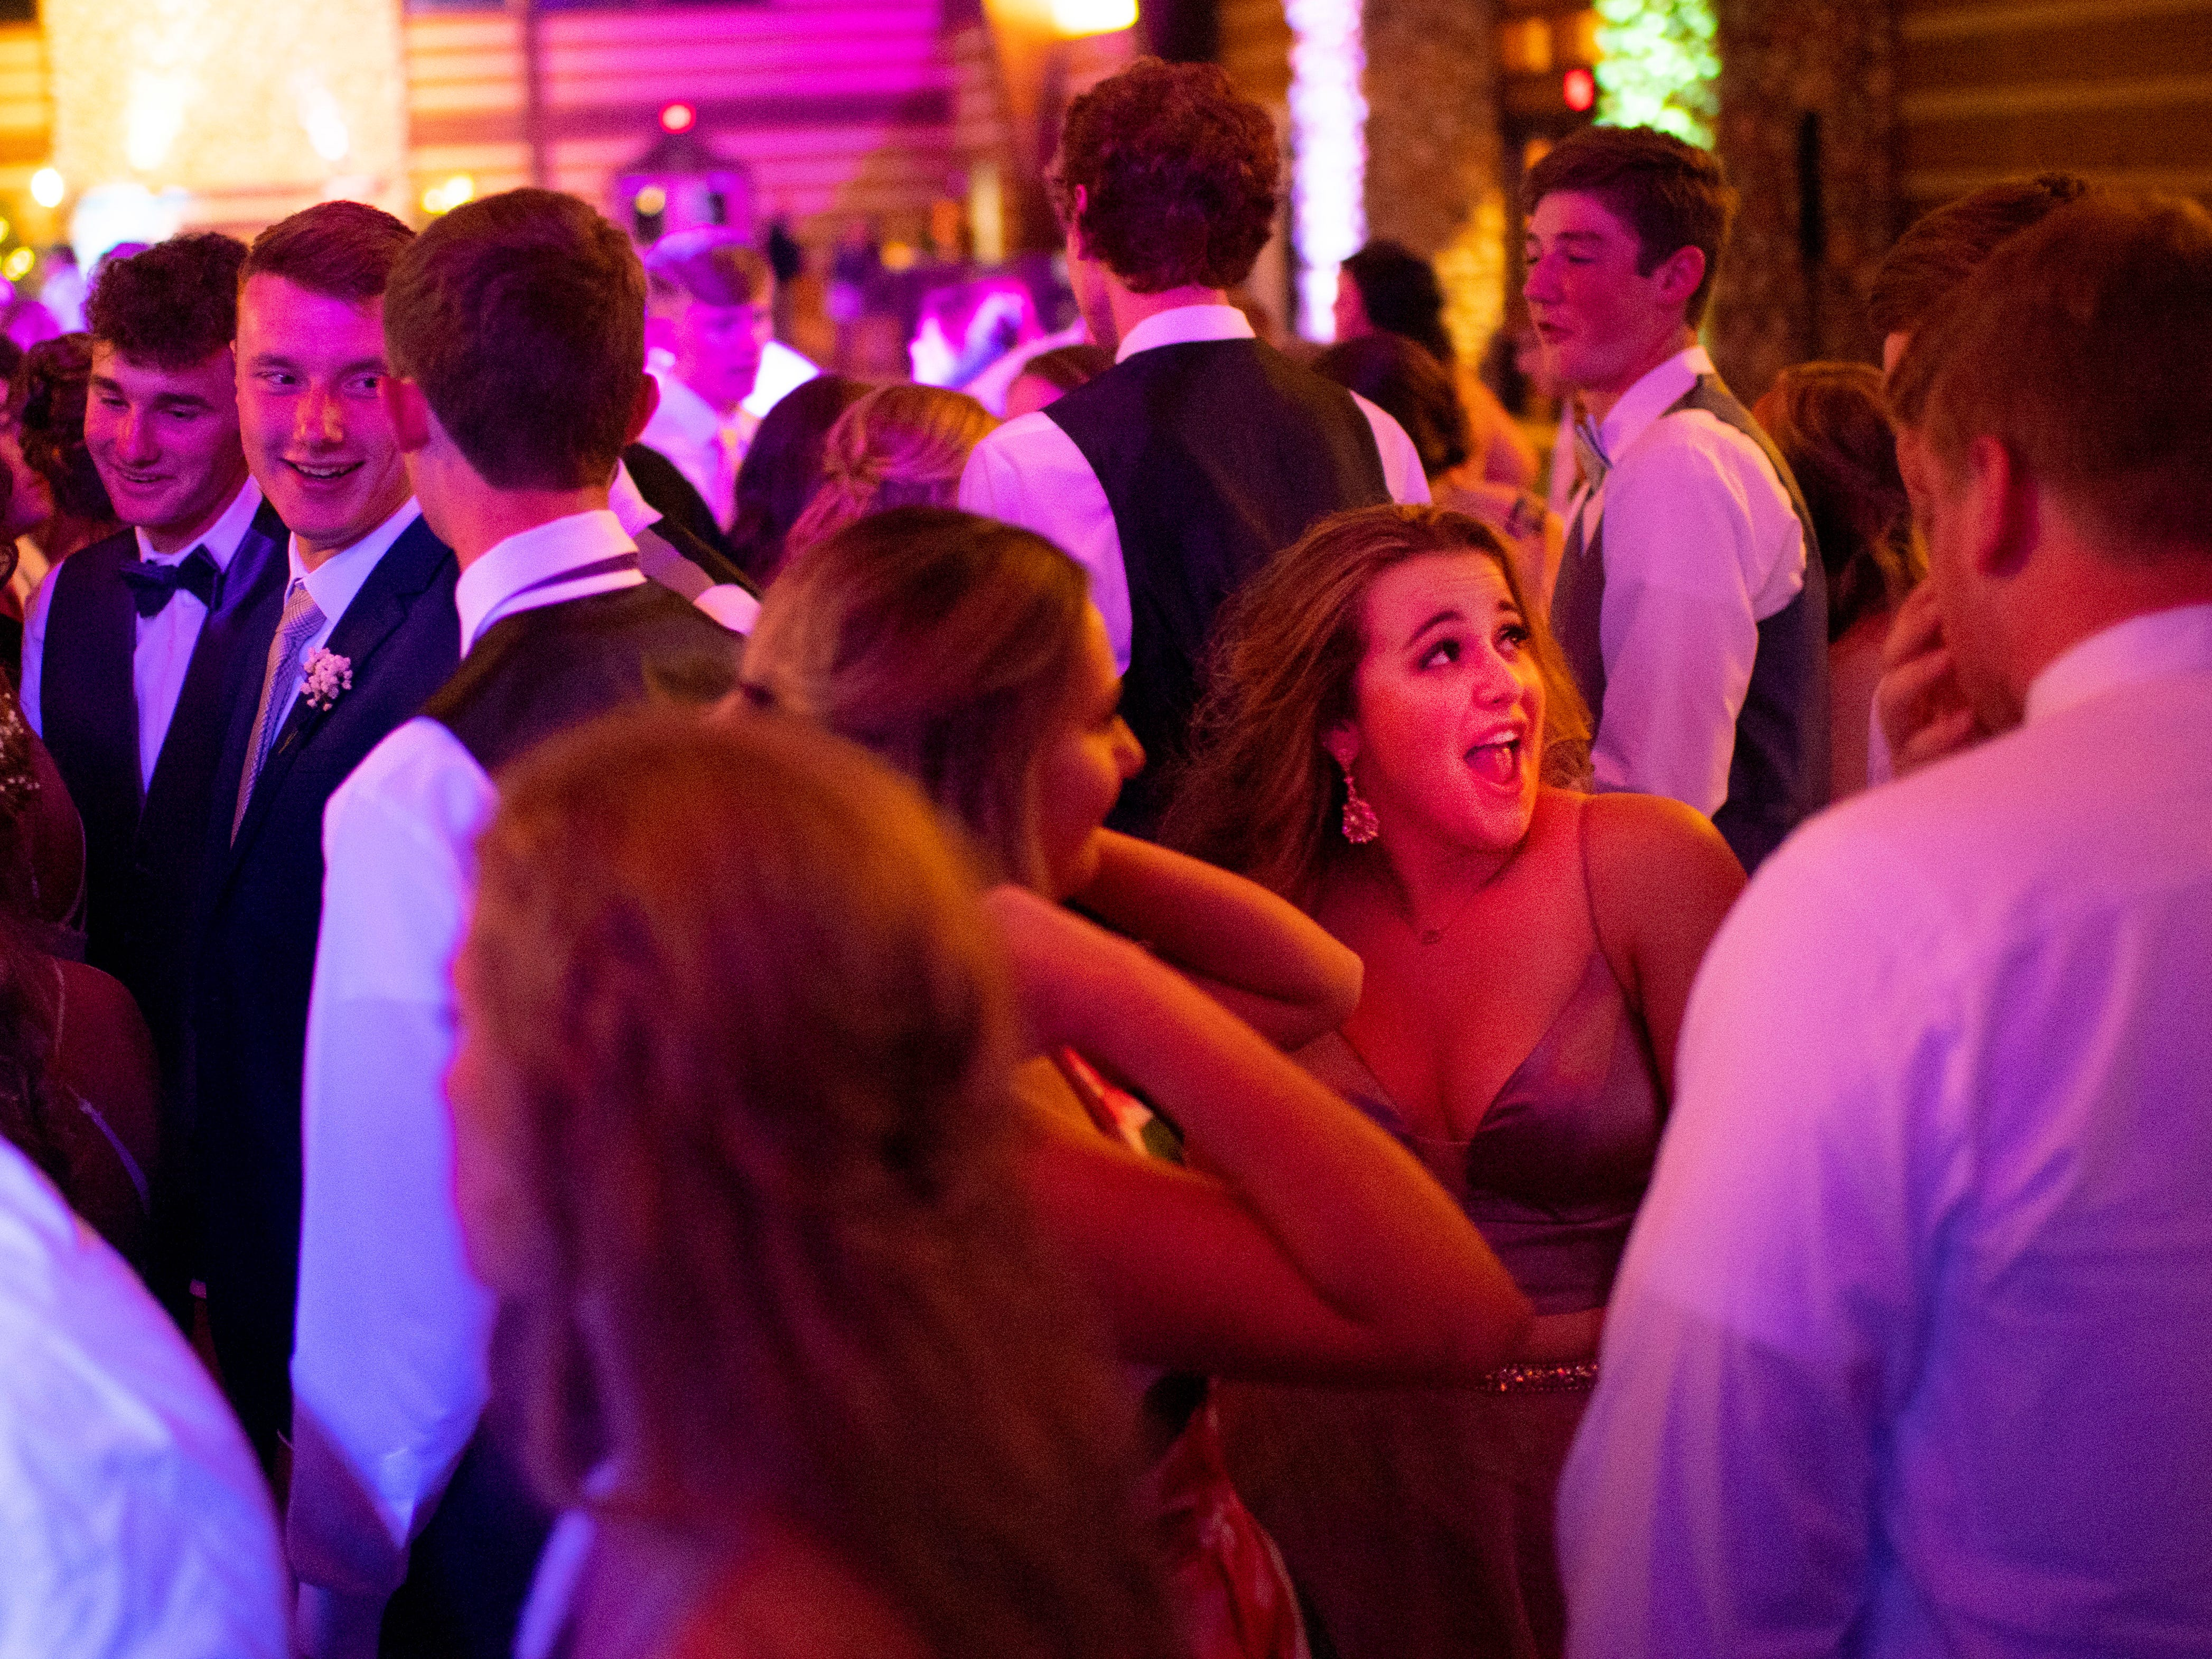 Students gather to dance in front of the stage at Mater Dei's prom at Burdette Park's Discovery Lodge Saturday night.